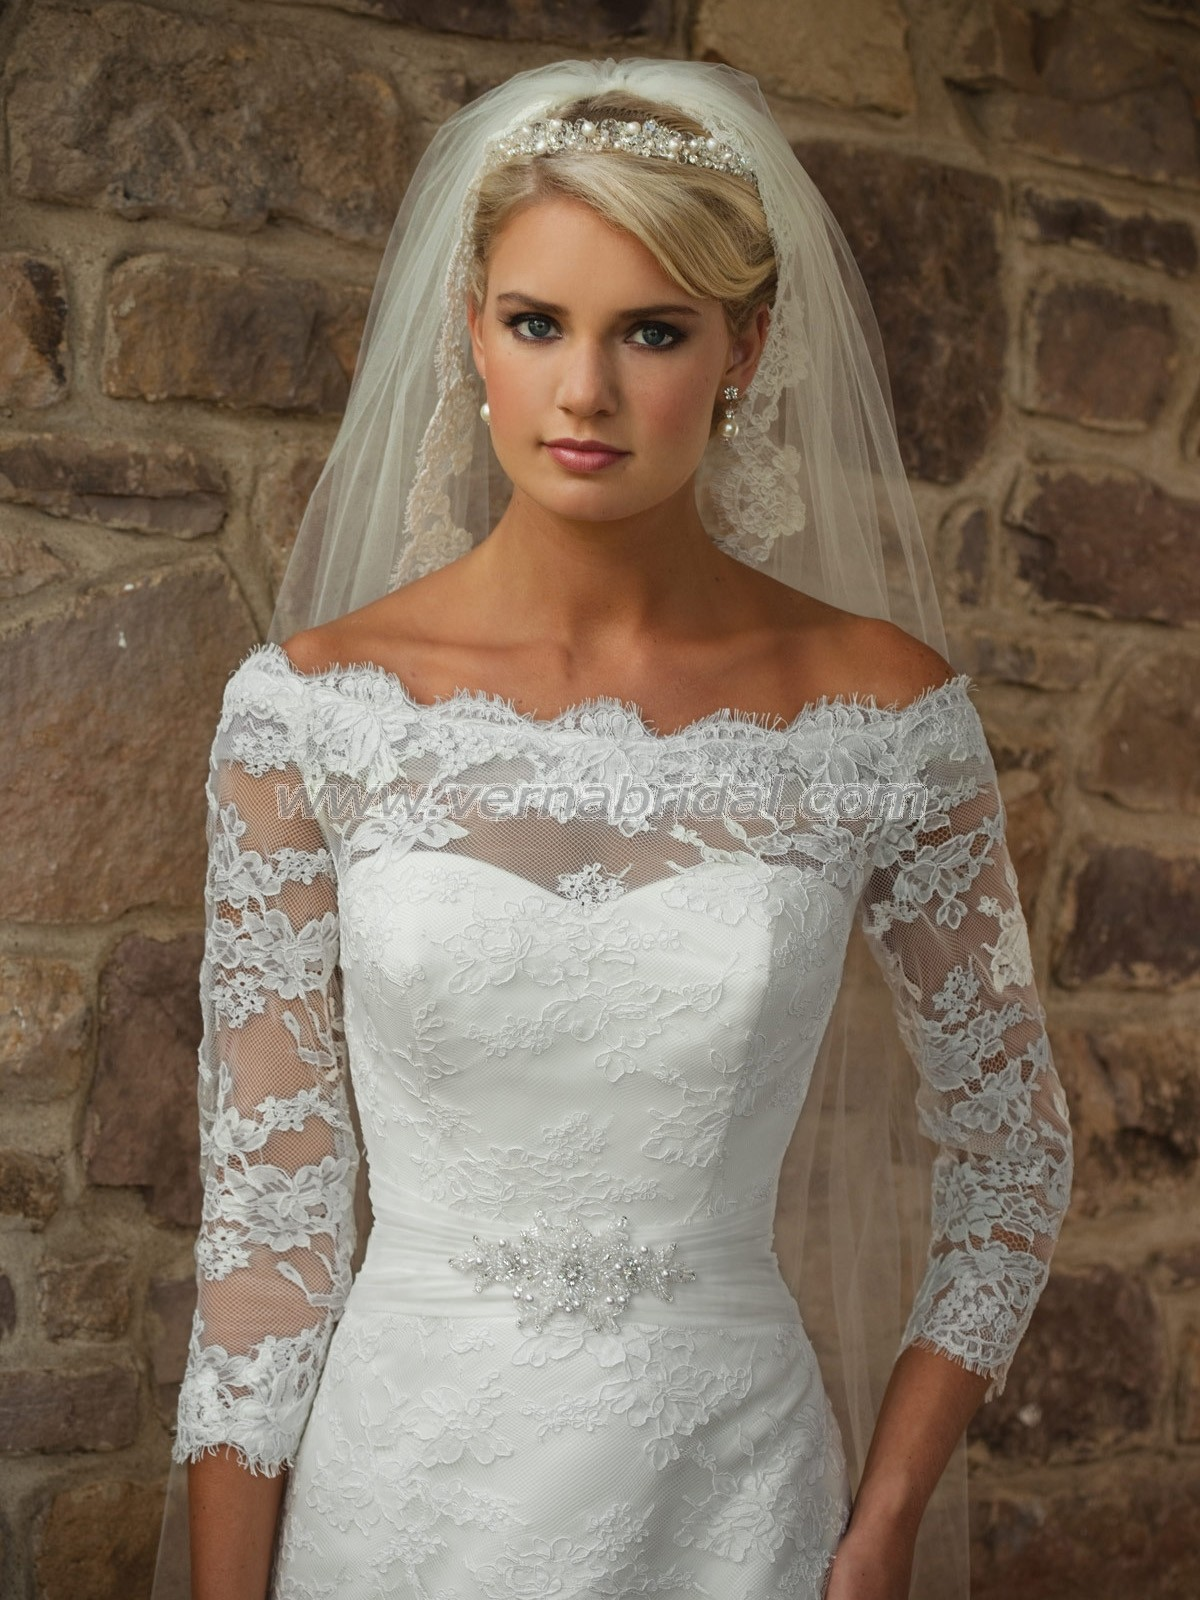 Wedding Dress With Lace Sleeves : Romantic wedding dresses with lace sleeves sangmaestro